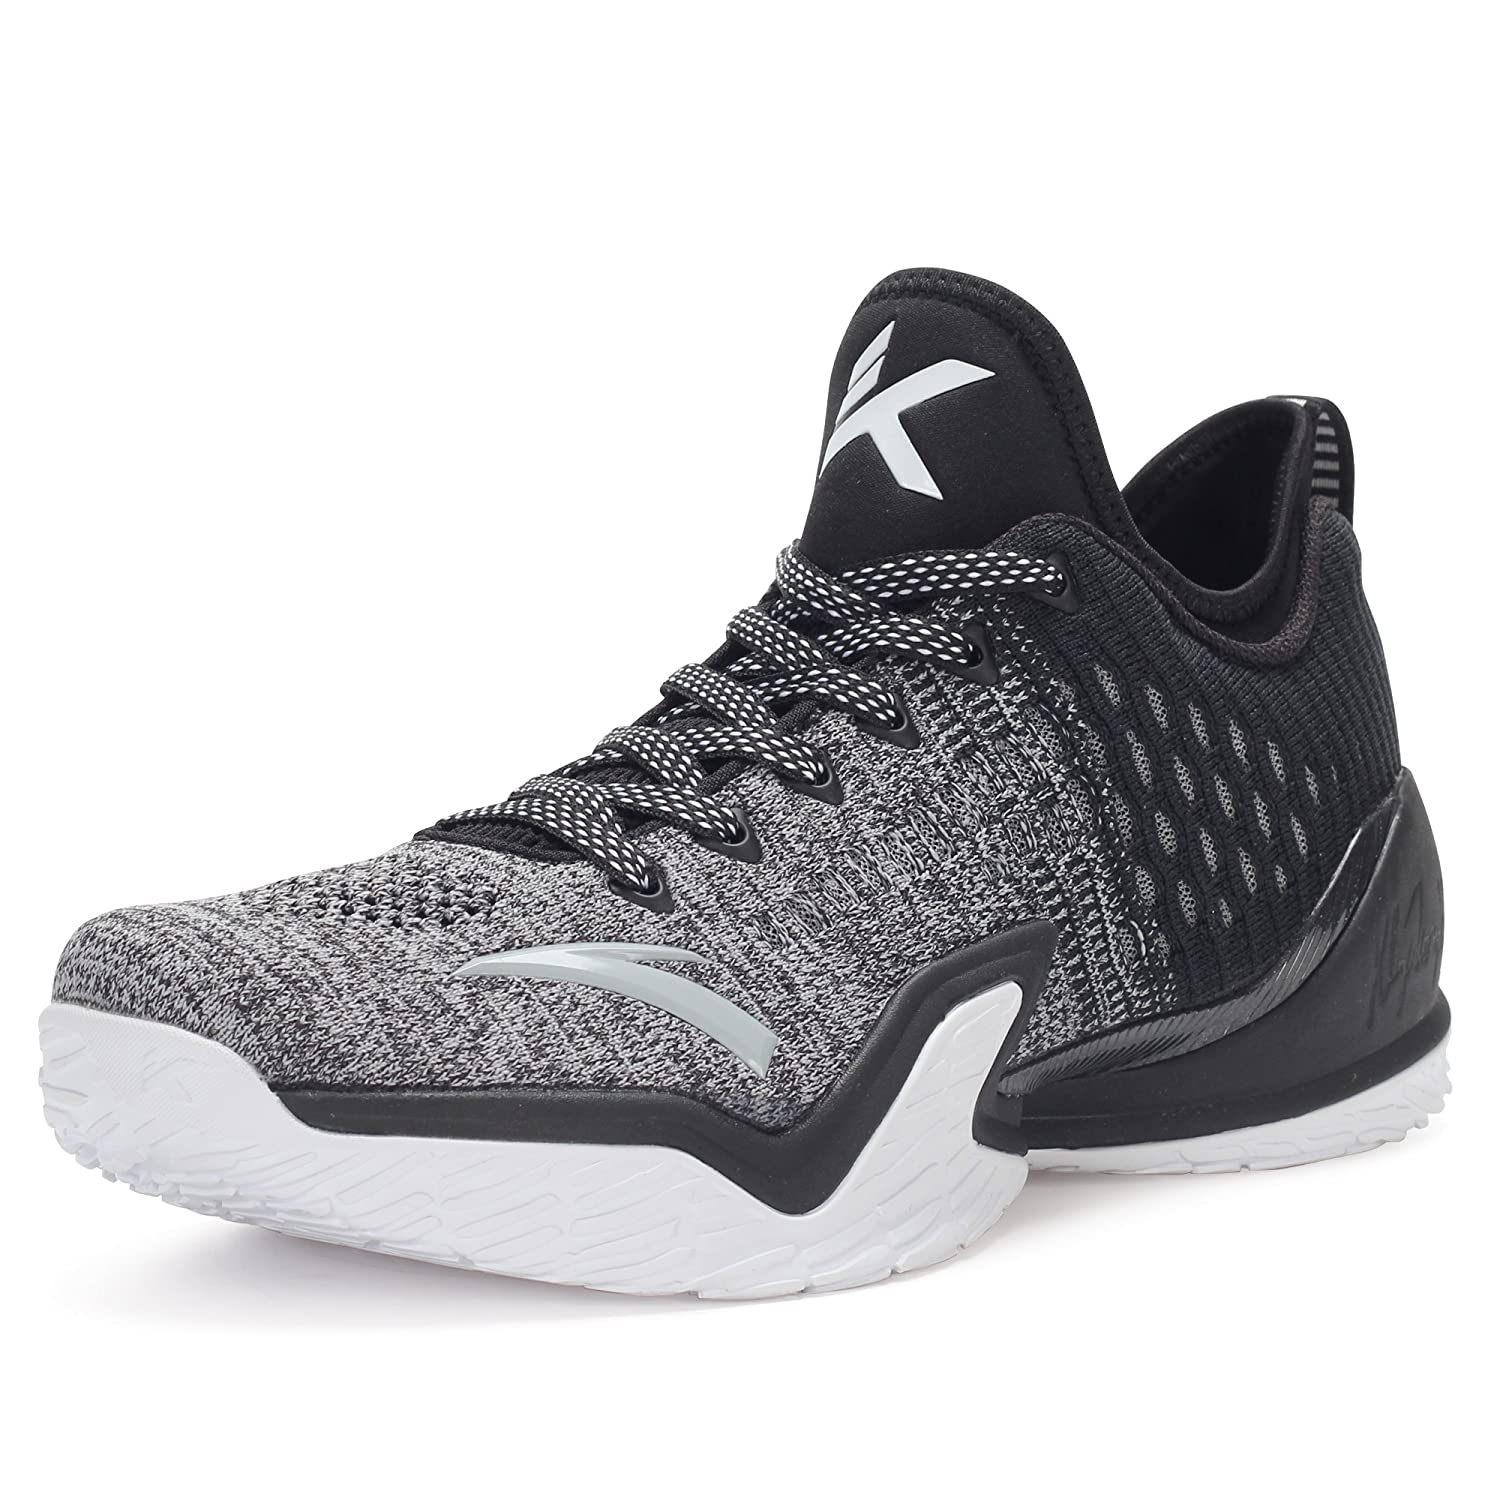 ANTA メンズ KT3 PLAYOFFS B07BJXWZRB 9 D(M) US Fog Gray/Charcoal Gray/White